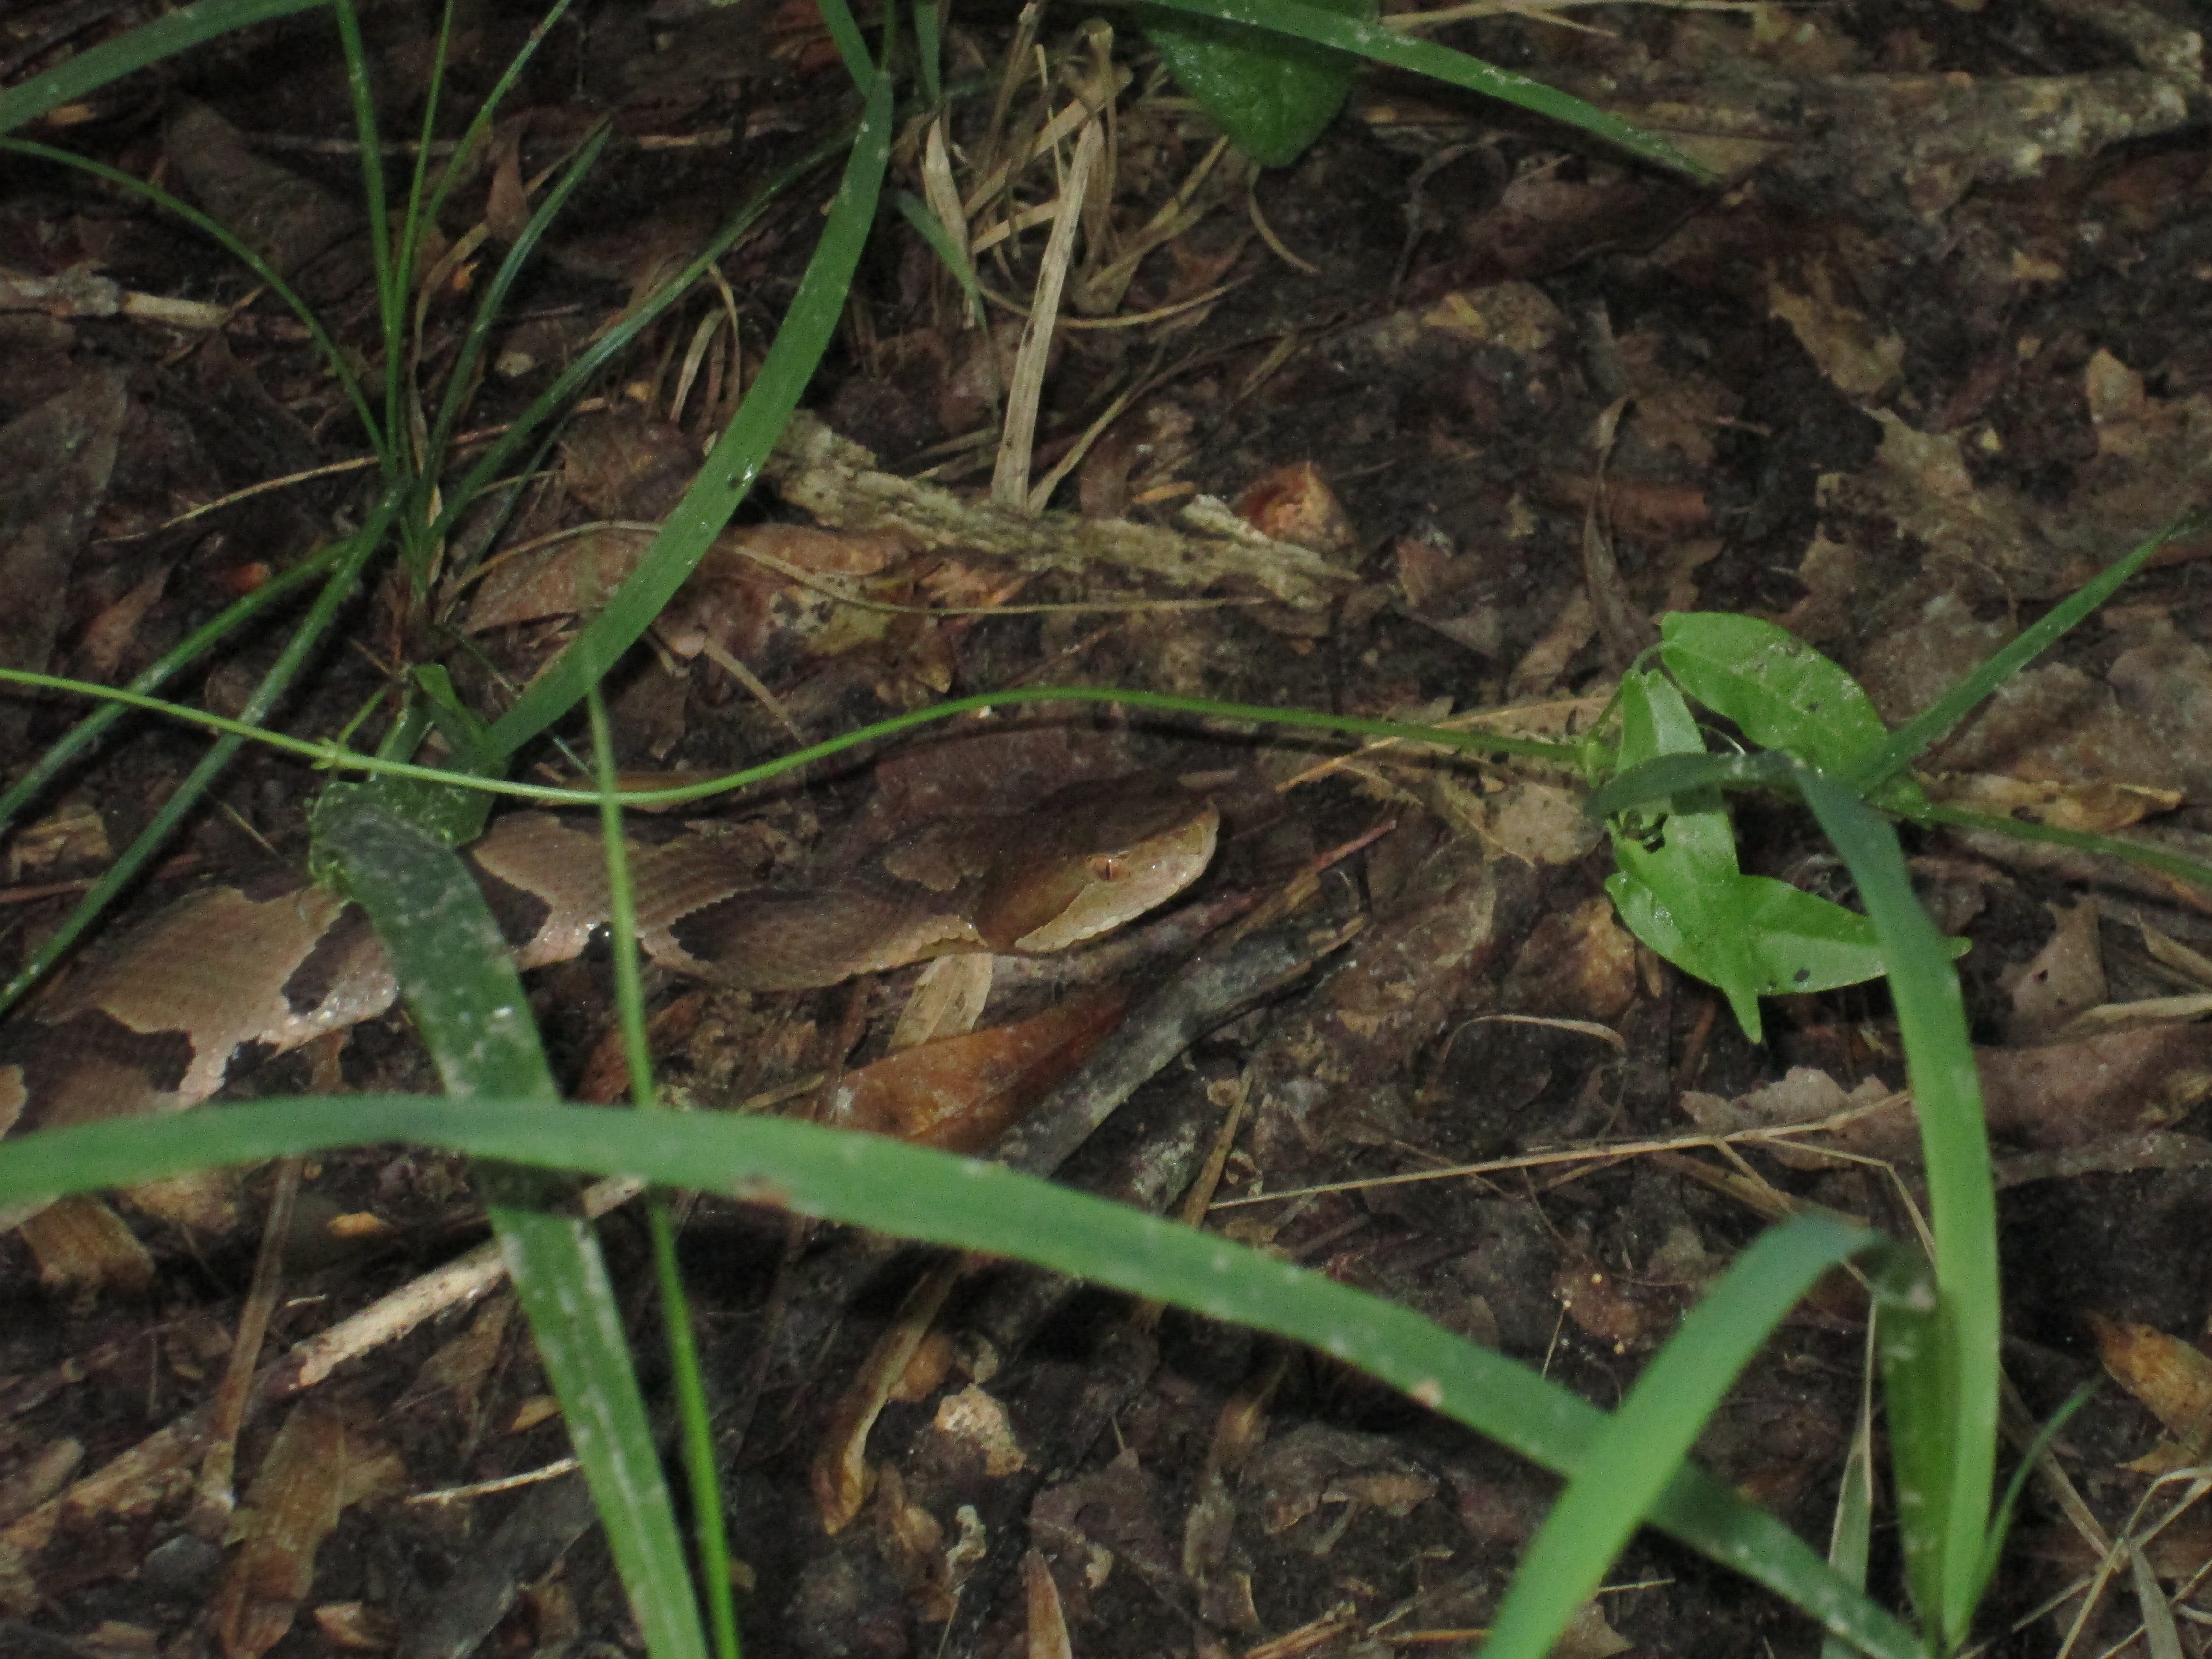 Image of a copperhead snake